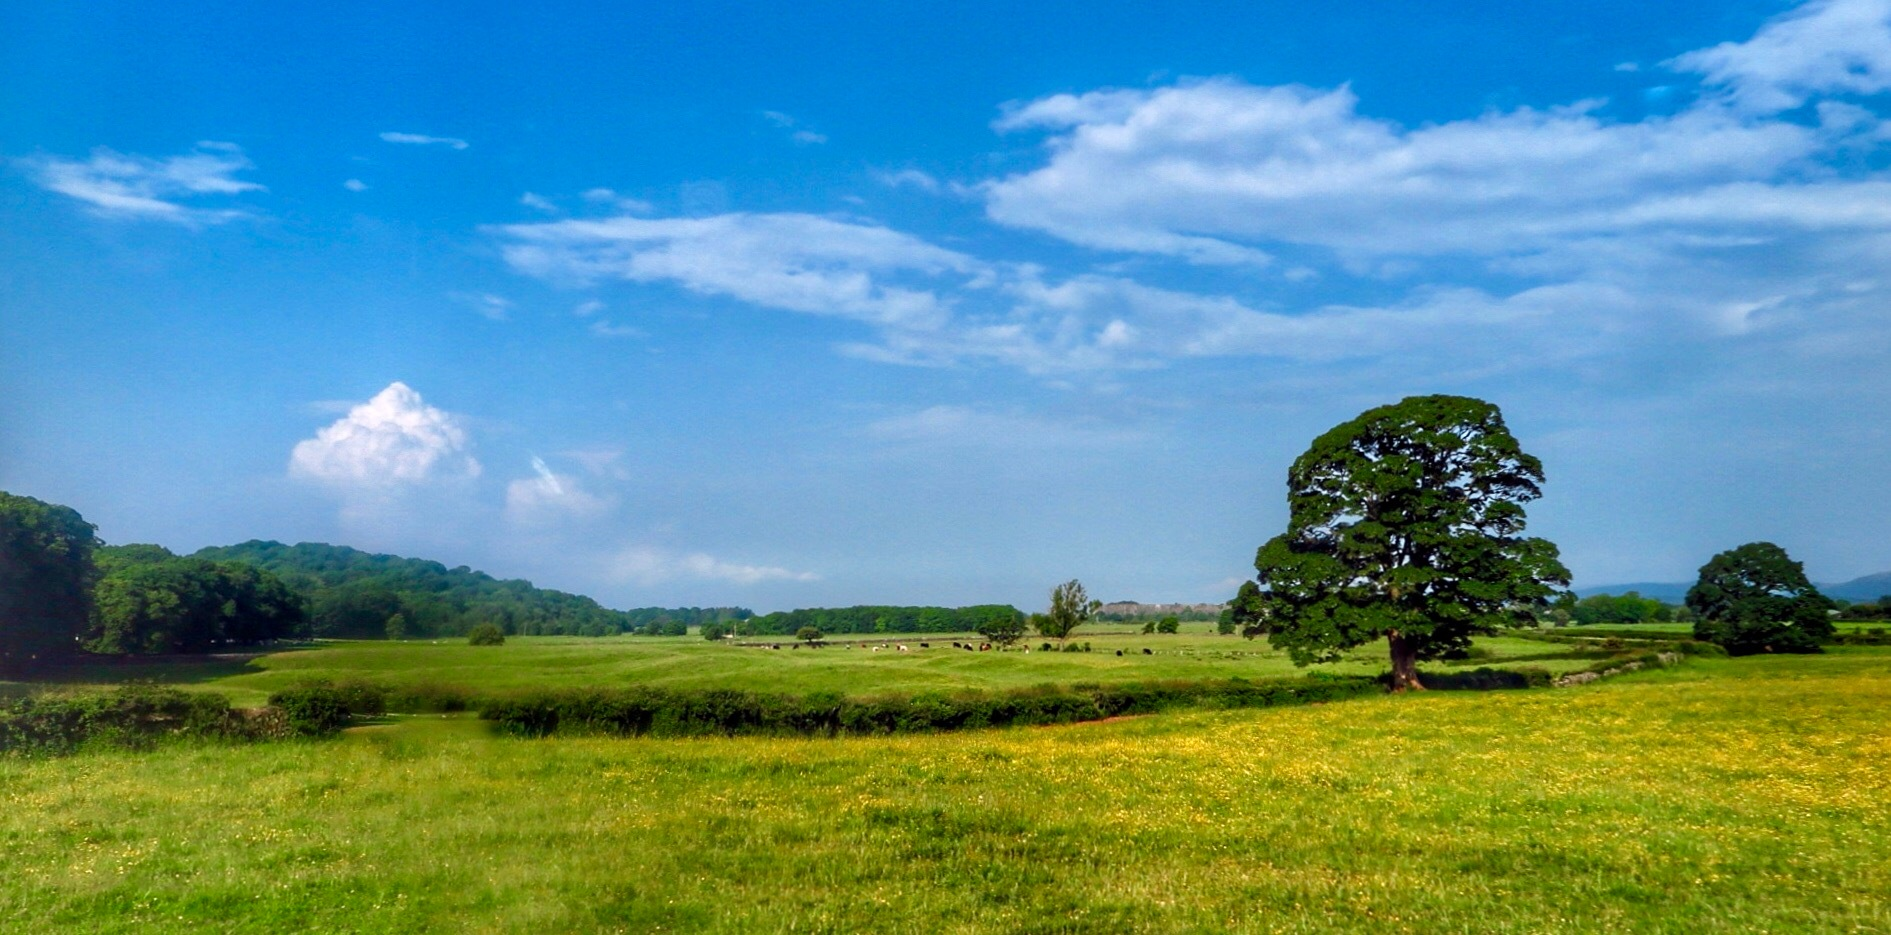 Blue, Green and Yellow...080601 by Michael jjg